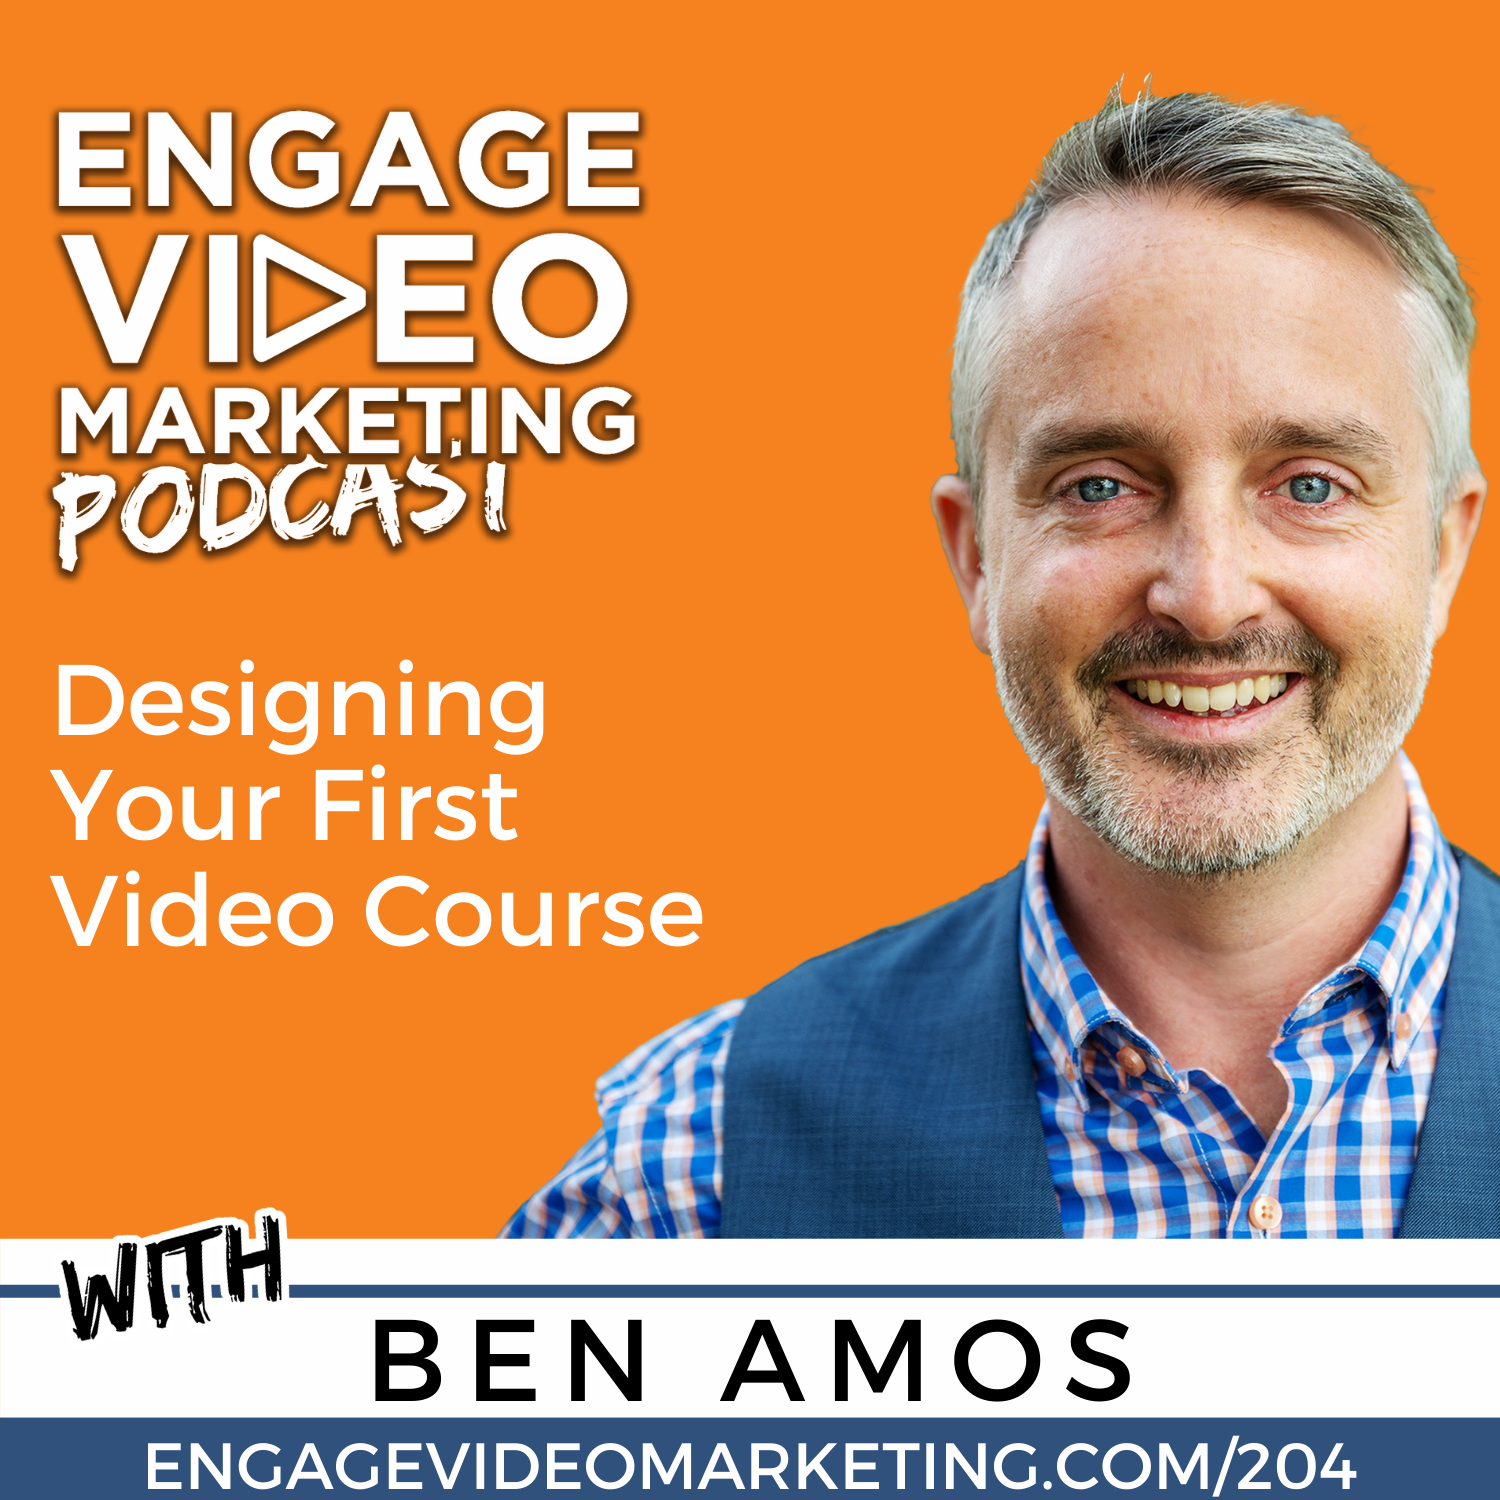 Designing Your First Video Course with Ben Amos